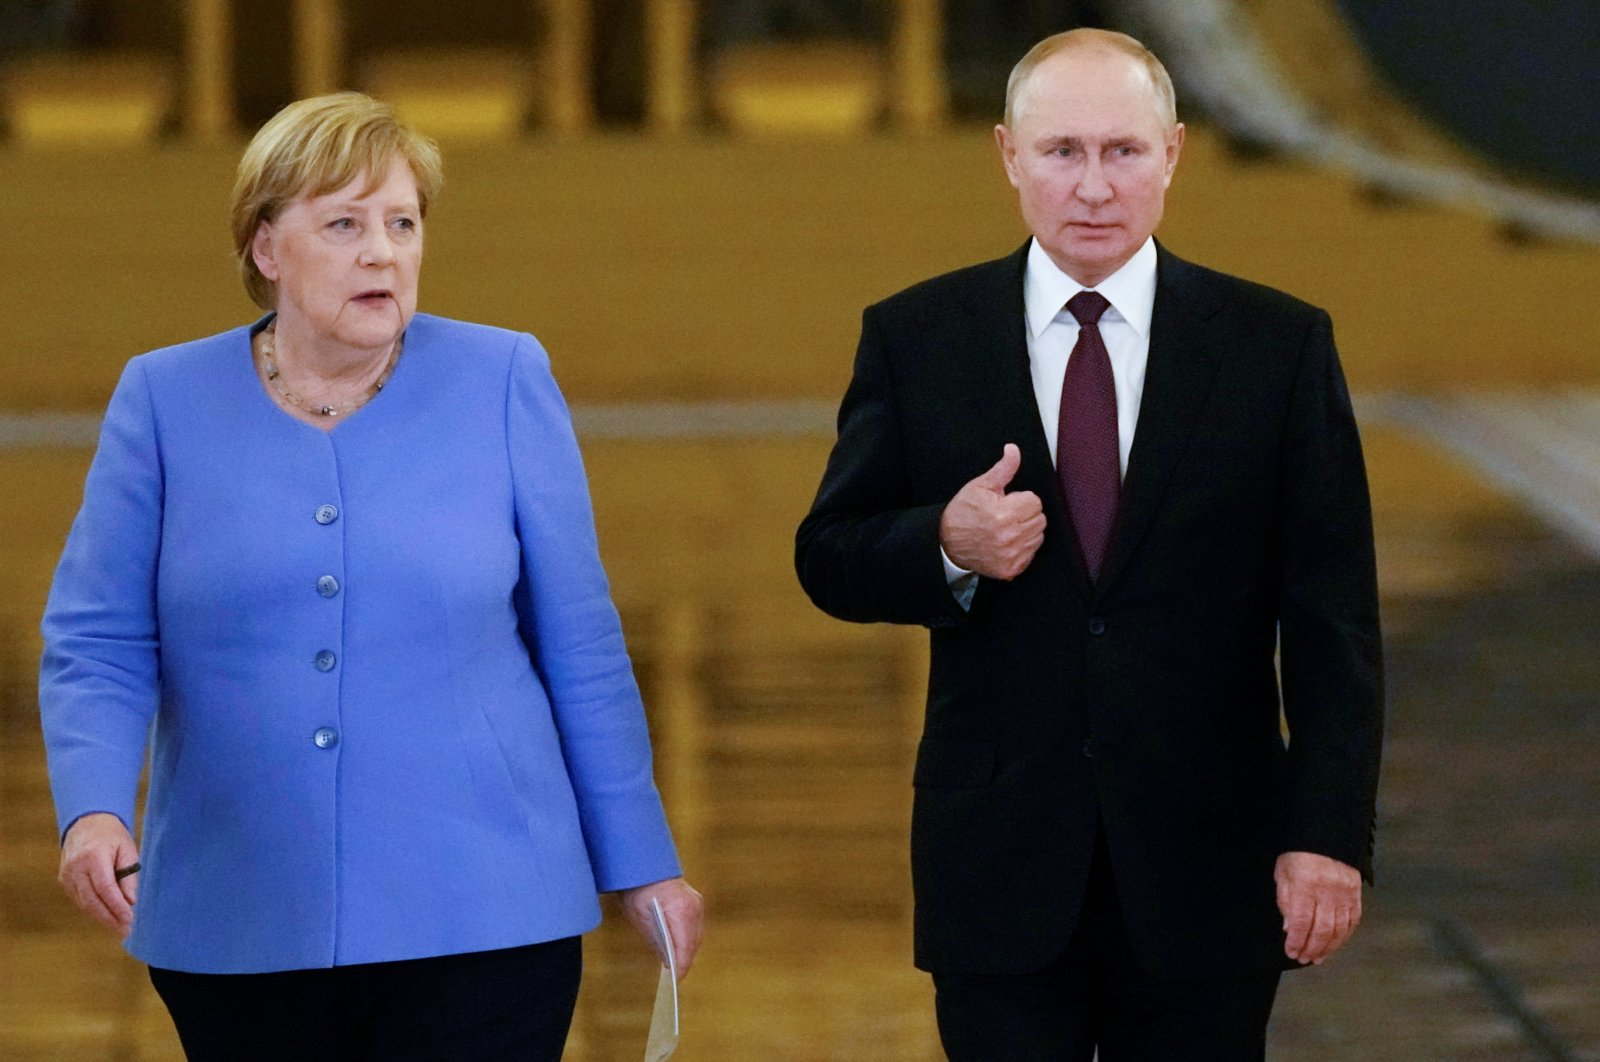 Russian President Vladimir Putin (R) and German Chancellor Angela Merkel (L) enter a hall during a news conference following their talks at the Kremlin in Moscow, Russia, Aug. 20, 2021. (Alexander Zemlianichenko / Pool via Reuters)